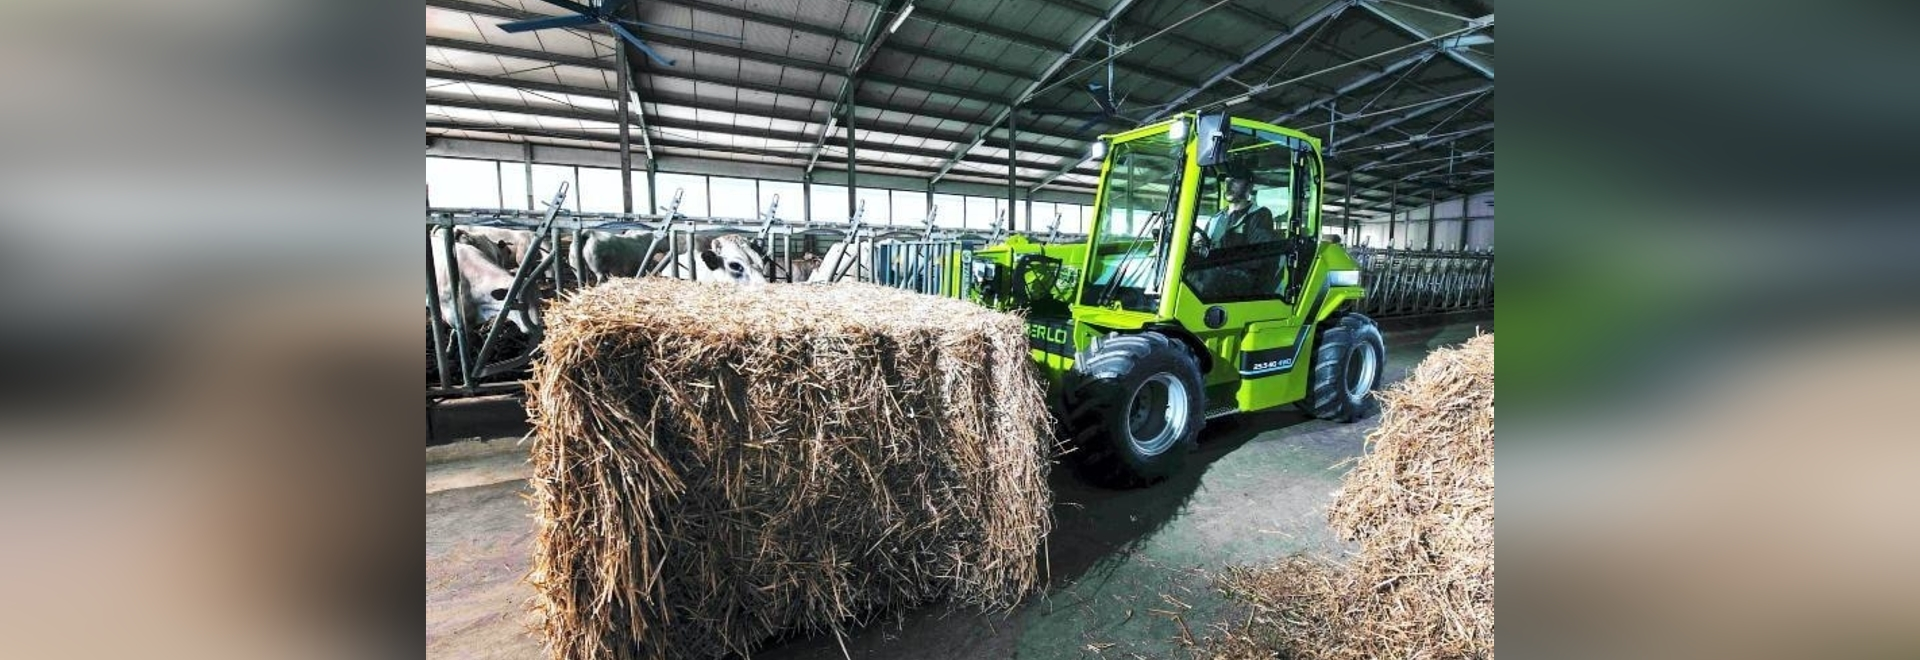 New year arrival for all-electric Merlo E-worker telehandler